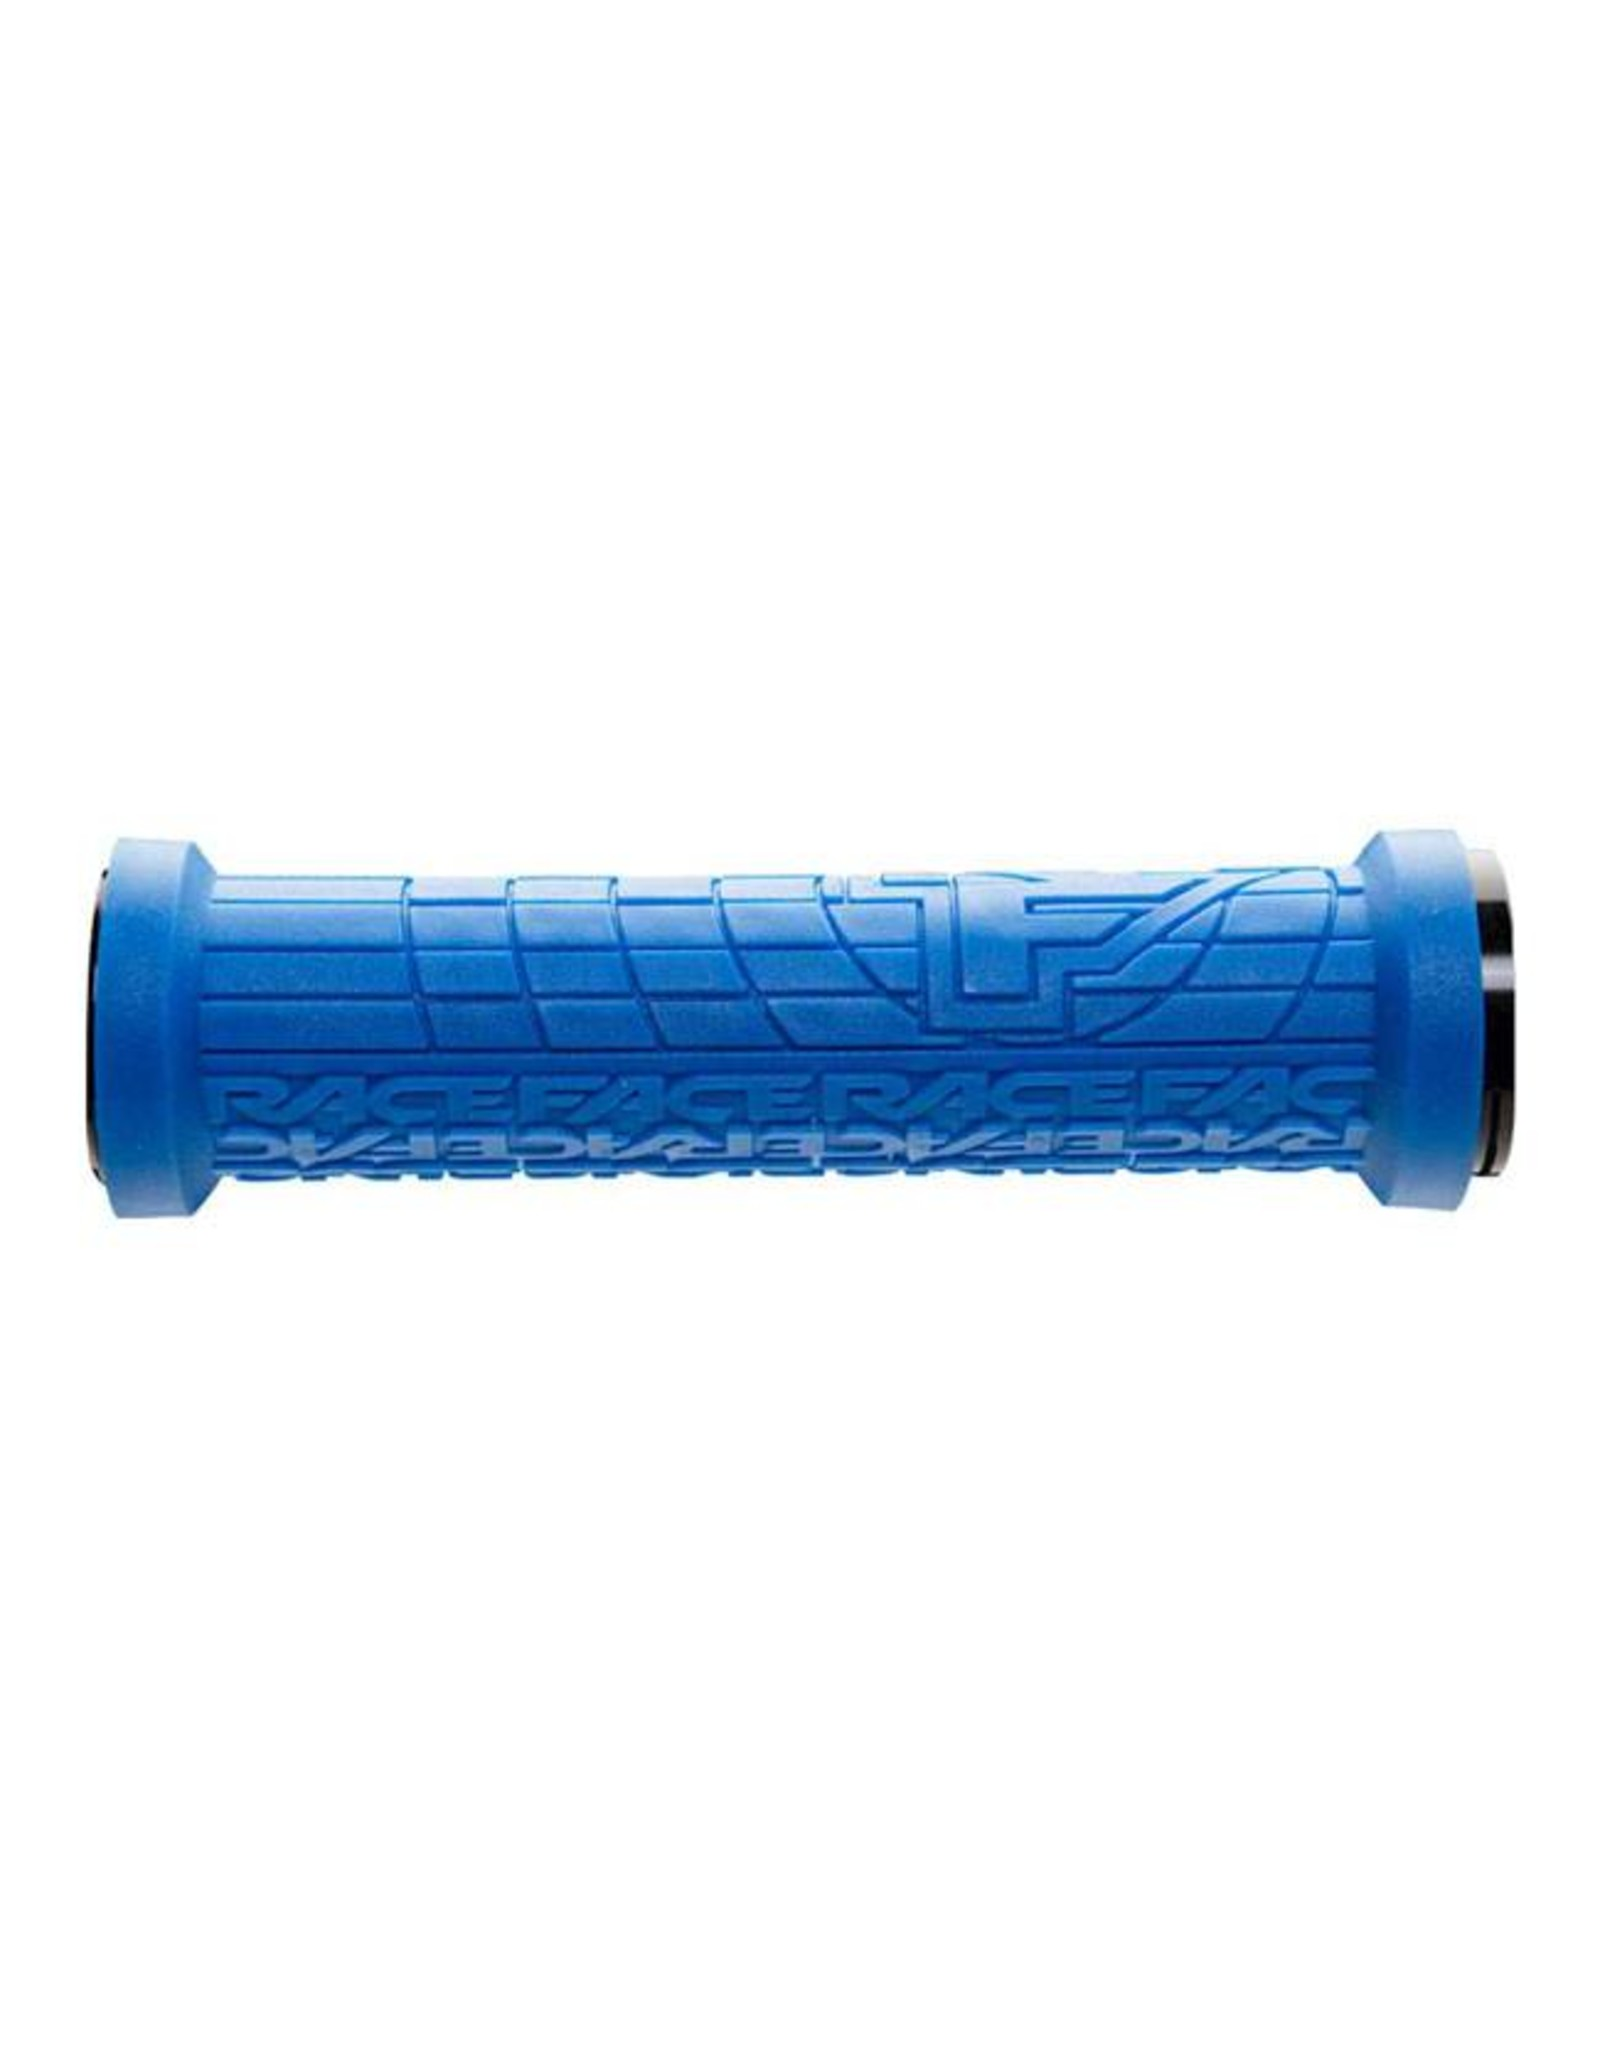 RaceFace RaceFace Grippler 33mm Lock-On Grip Blue